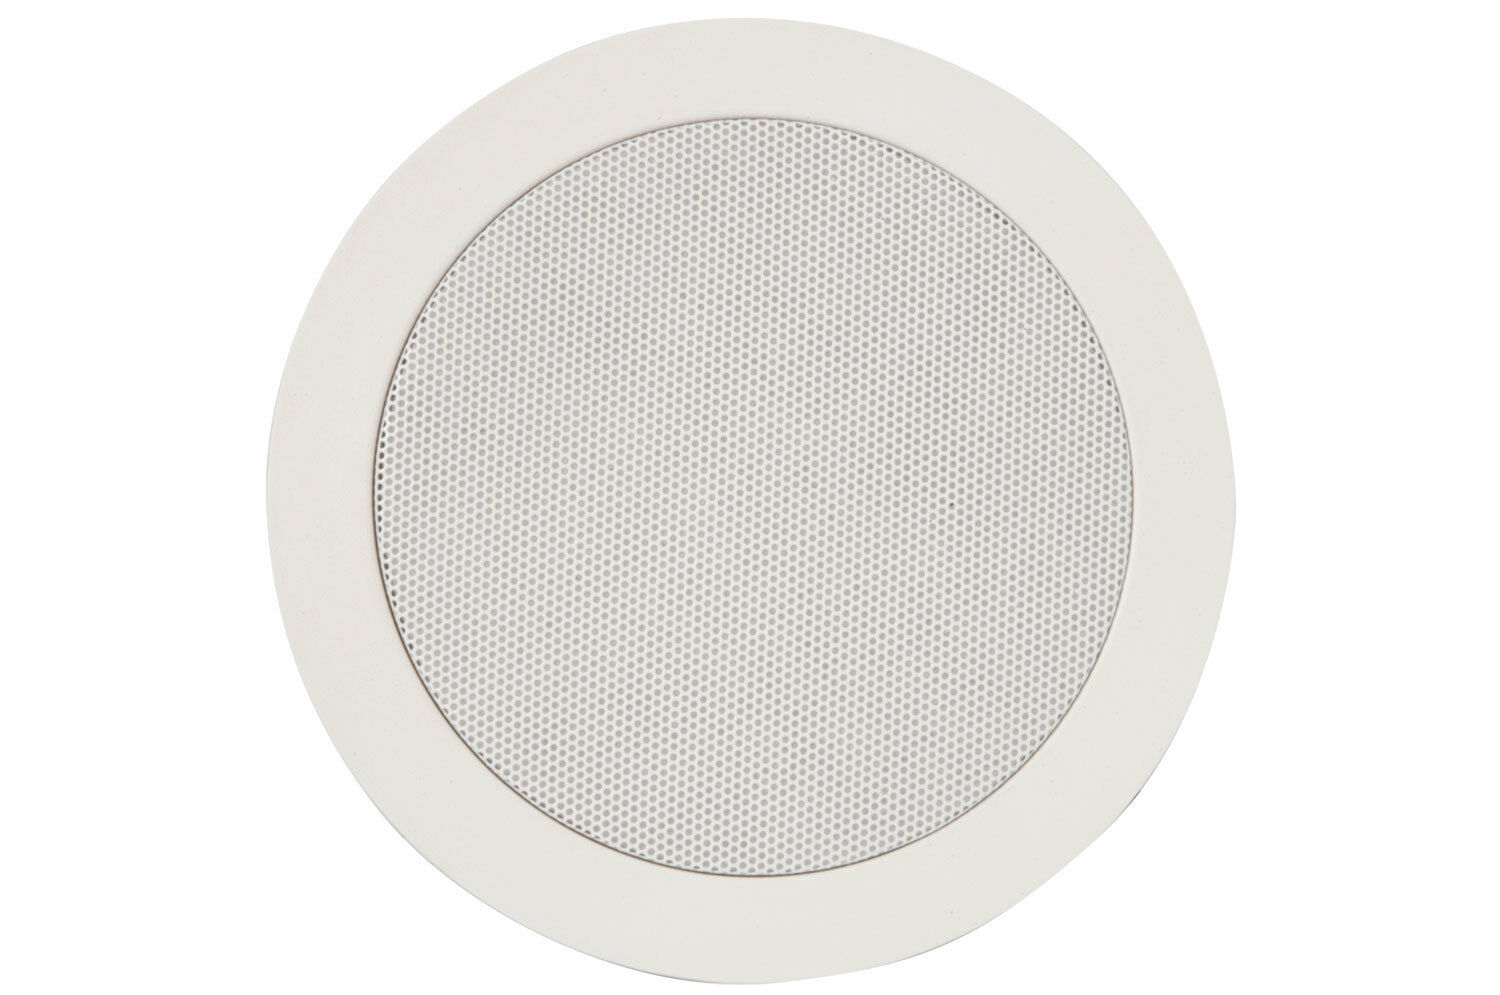 CC5V Ceiling Speaker with control 5.25